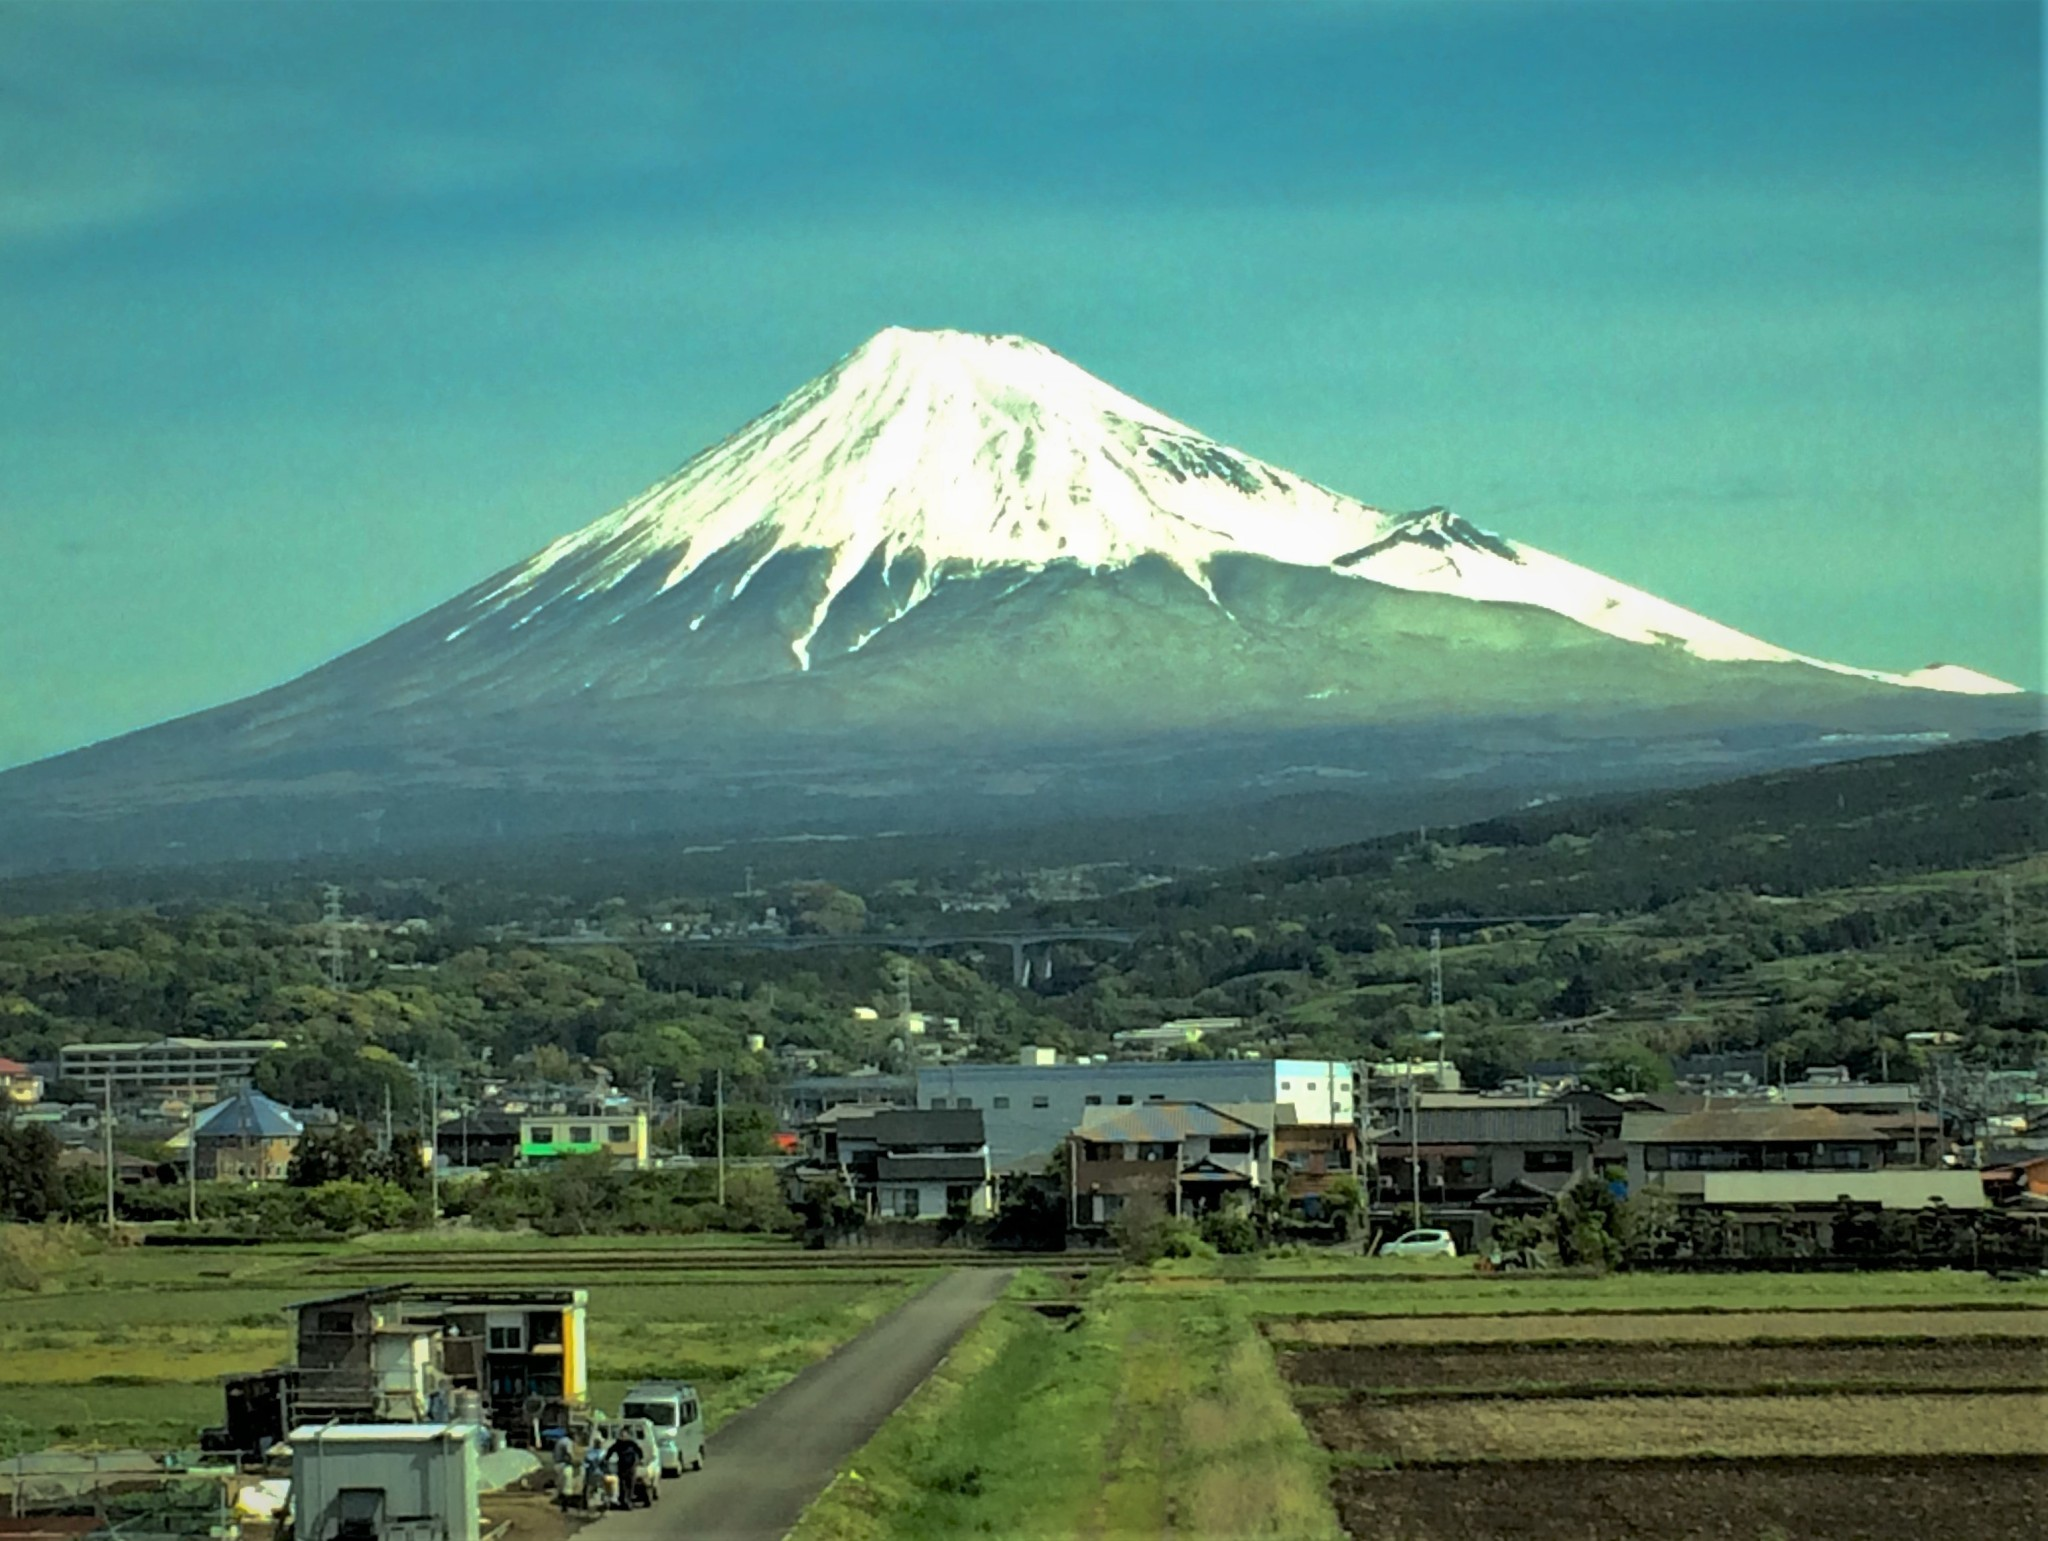 The imposing profile of a snow-covered Mount Fuji rising from the surrounding green plains to dominate the Japanese landscape.